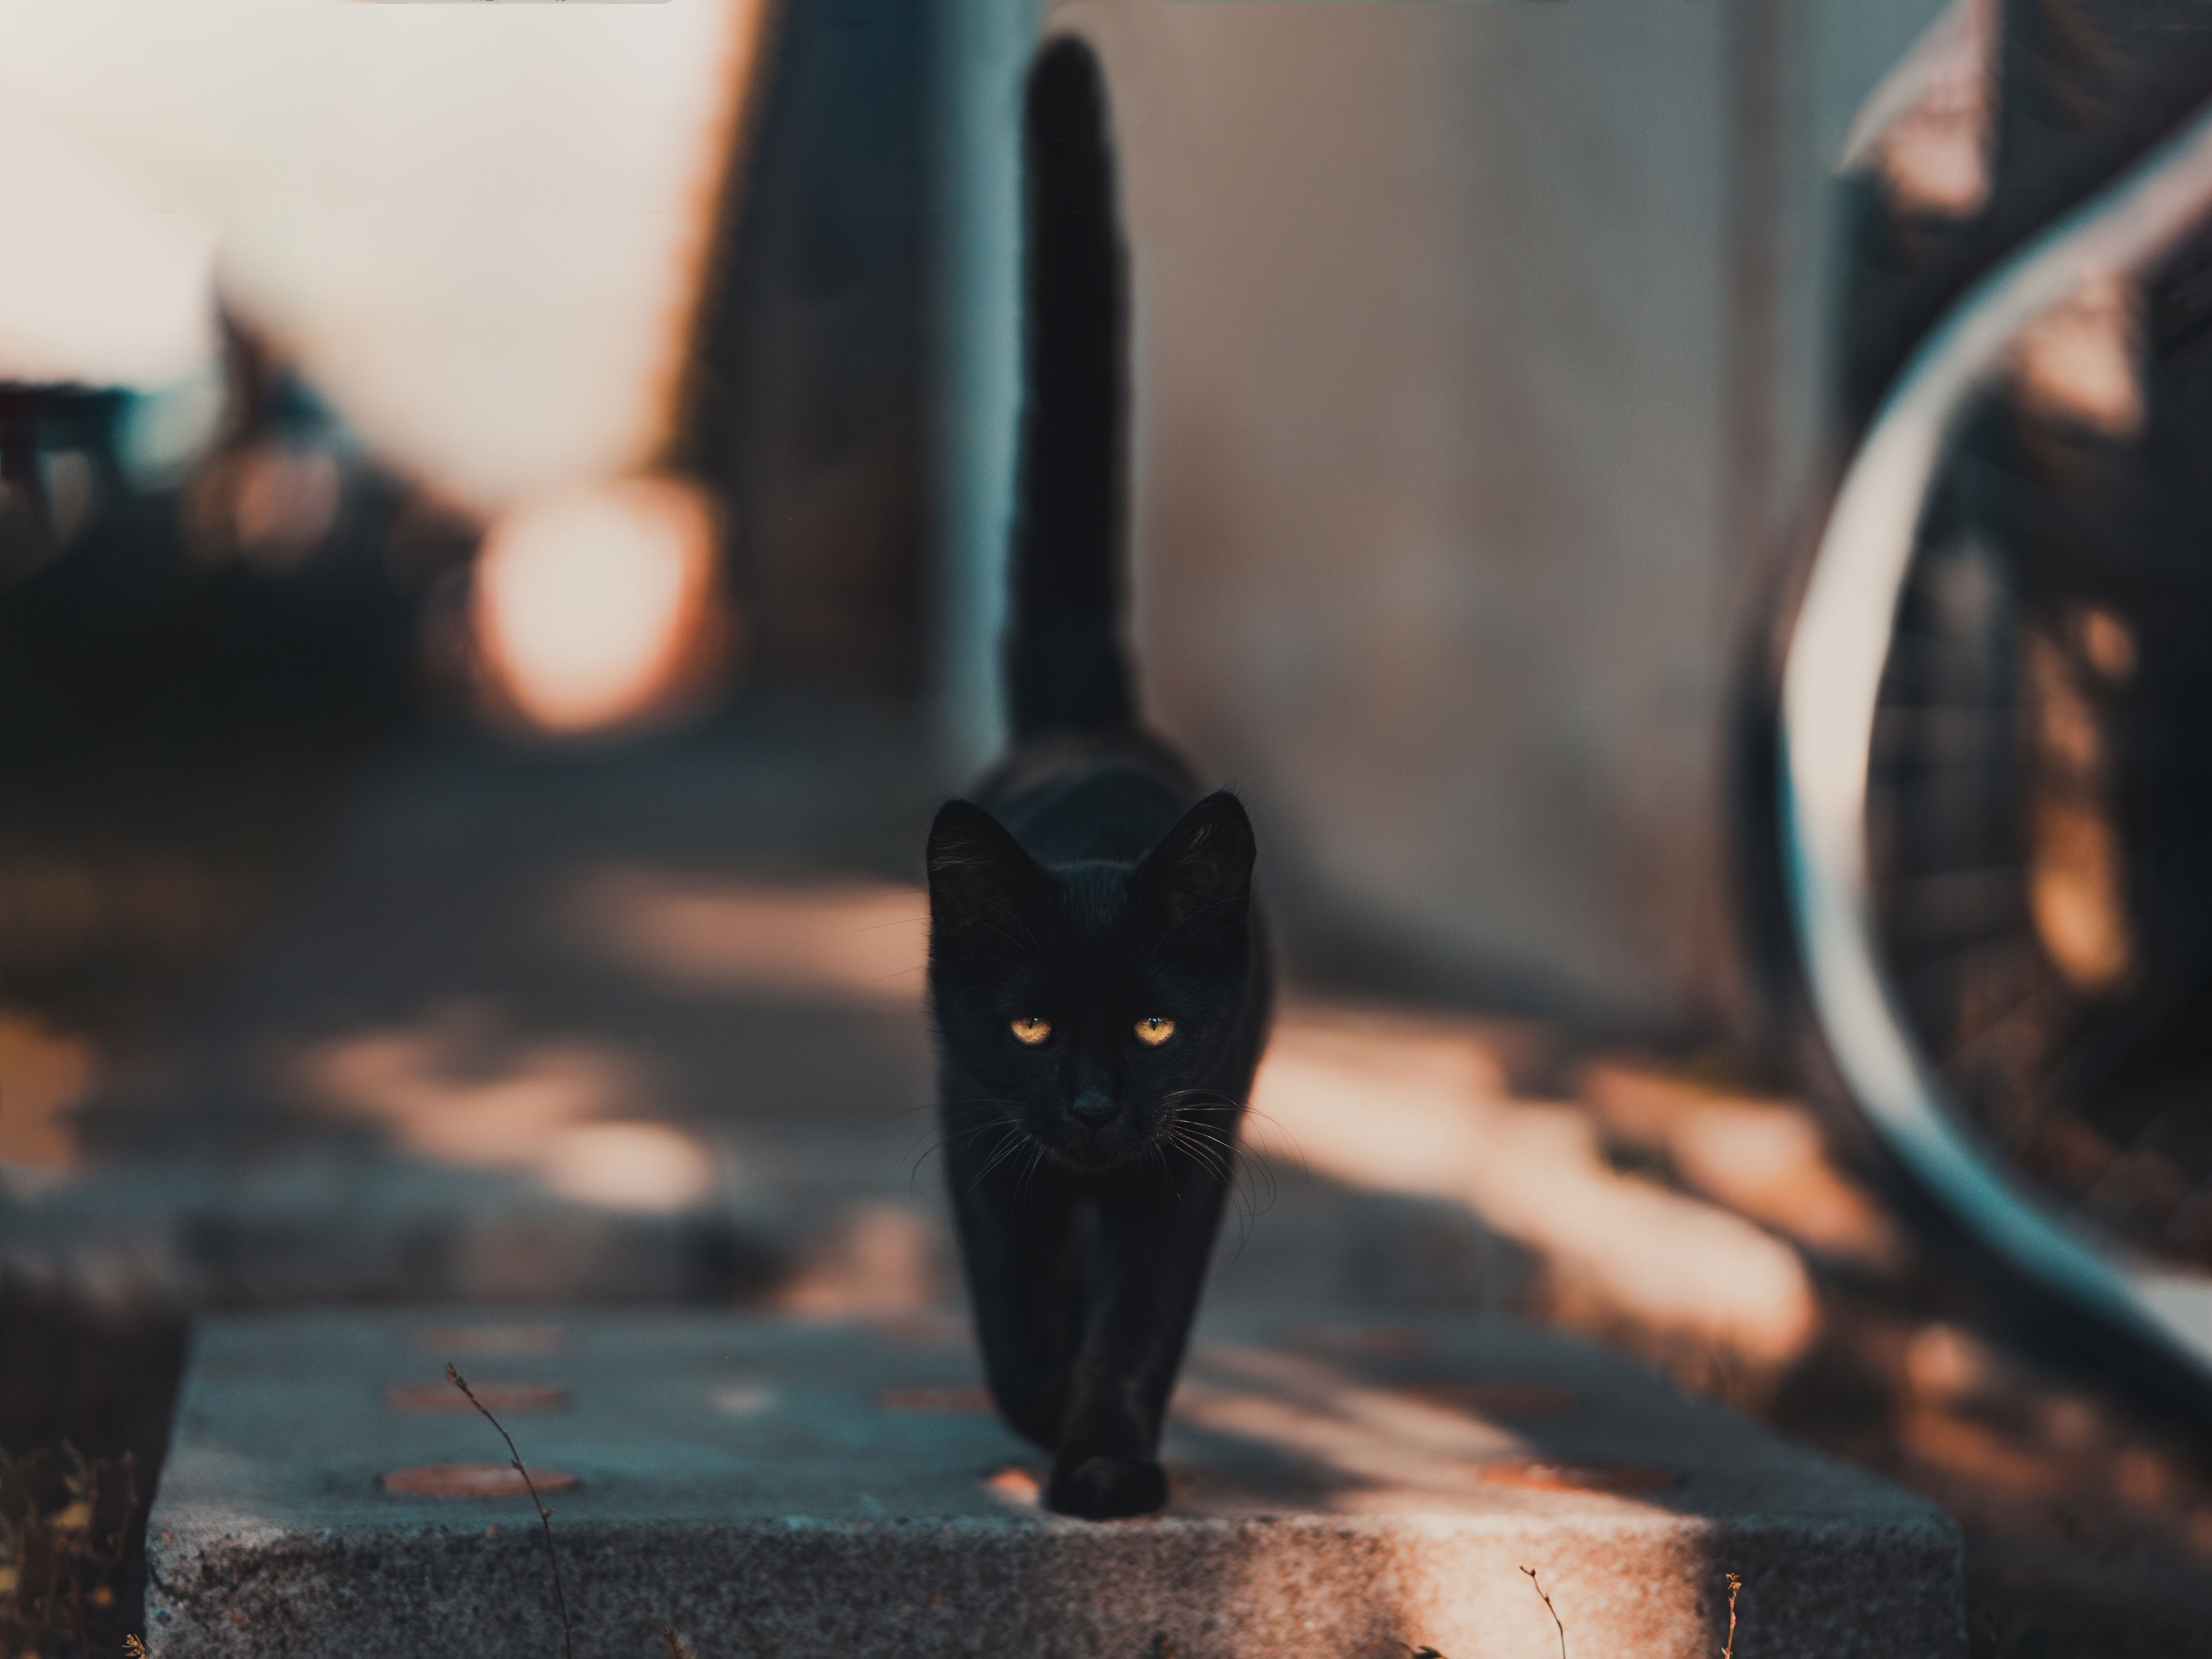 Best Kitty wallpapers for phone screen